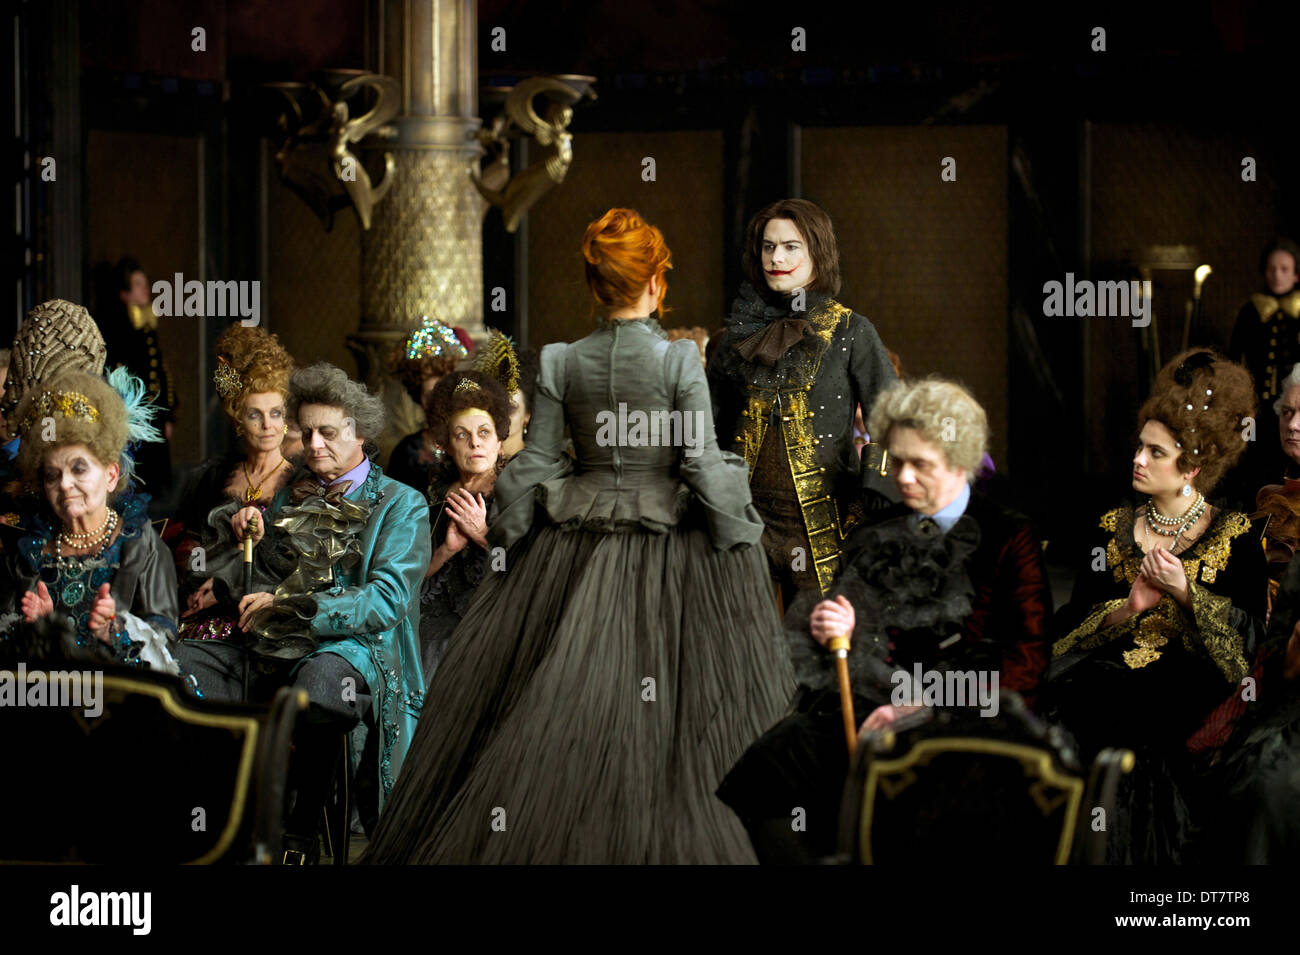 MARC-ANDRE GRONDIN THE MAN WHO LAUGHS; L'HOMME QUI RIT (2012) - Stock Image